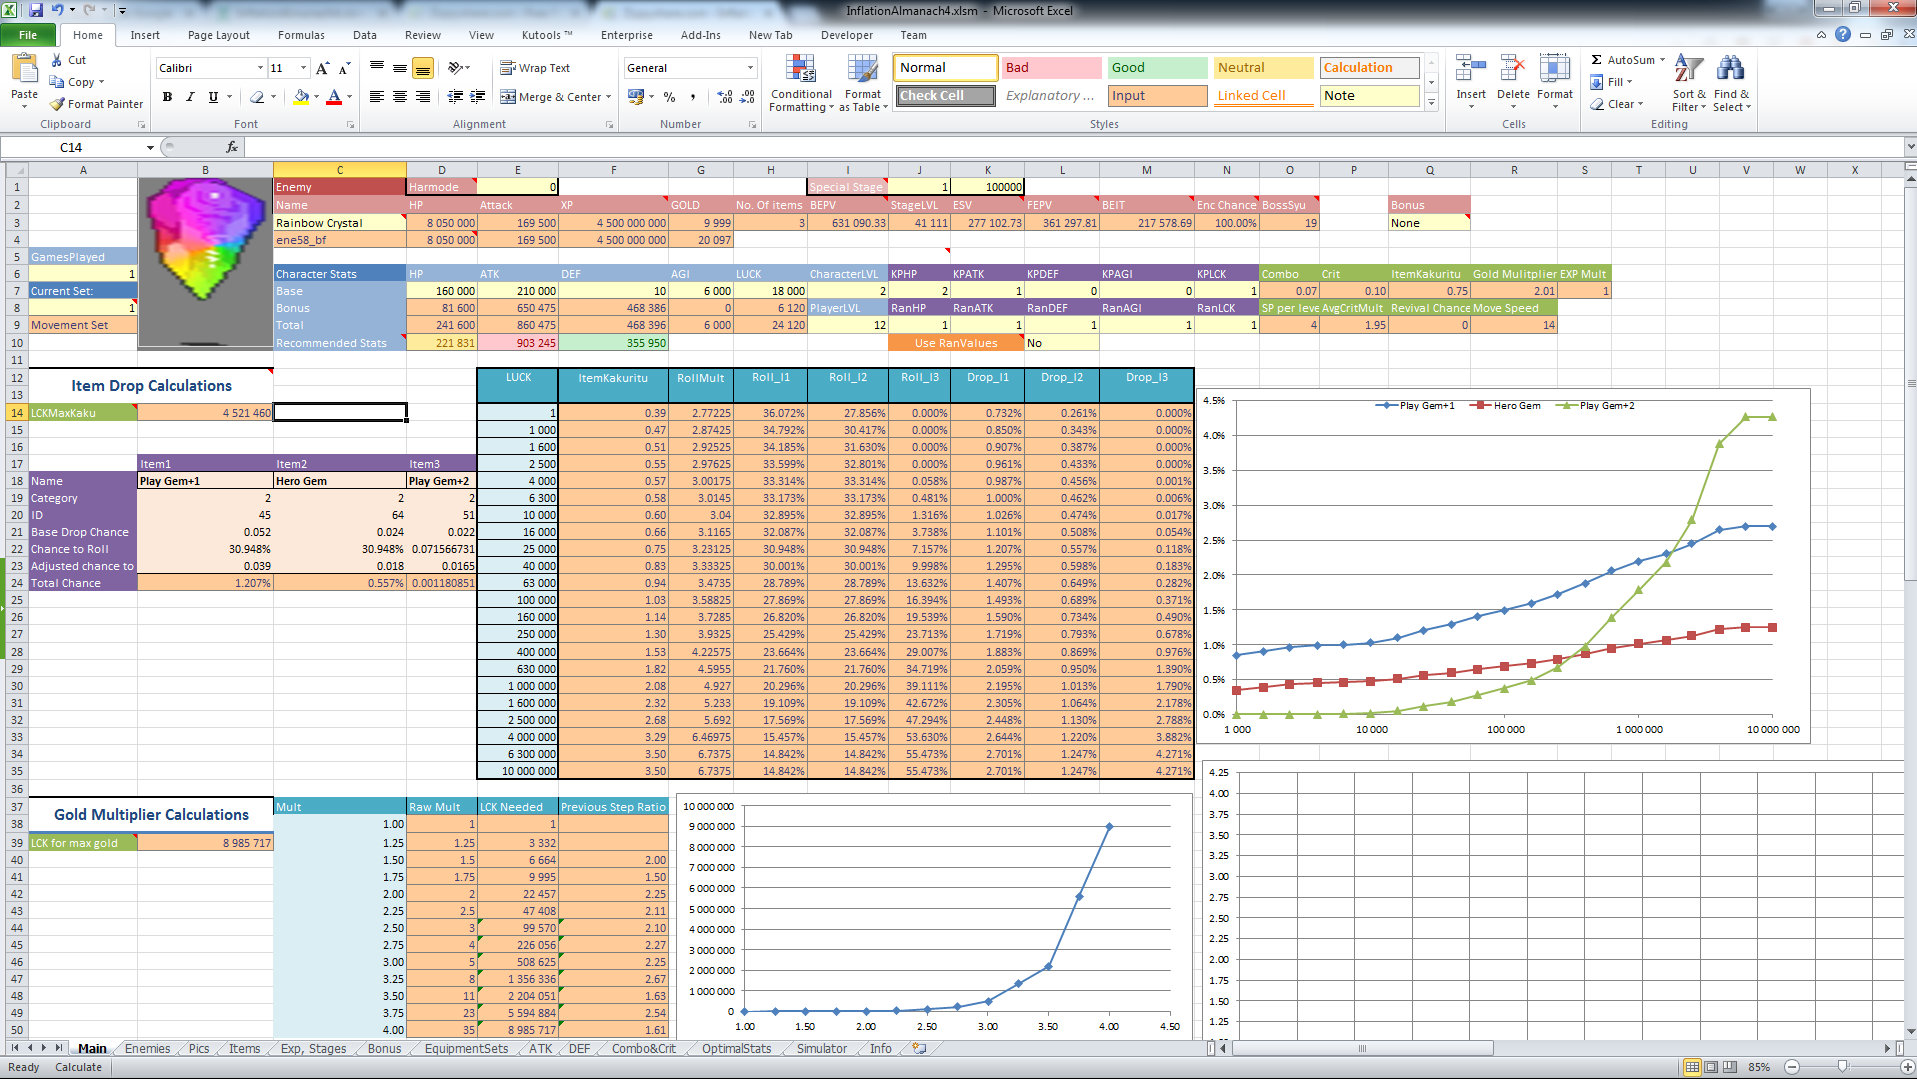 Inflation Almanach - Excel sheet for everything   Inflation